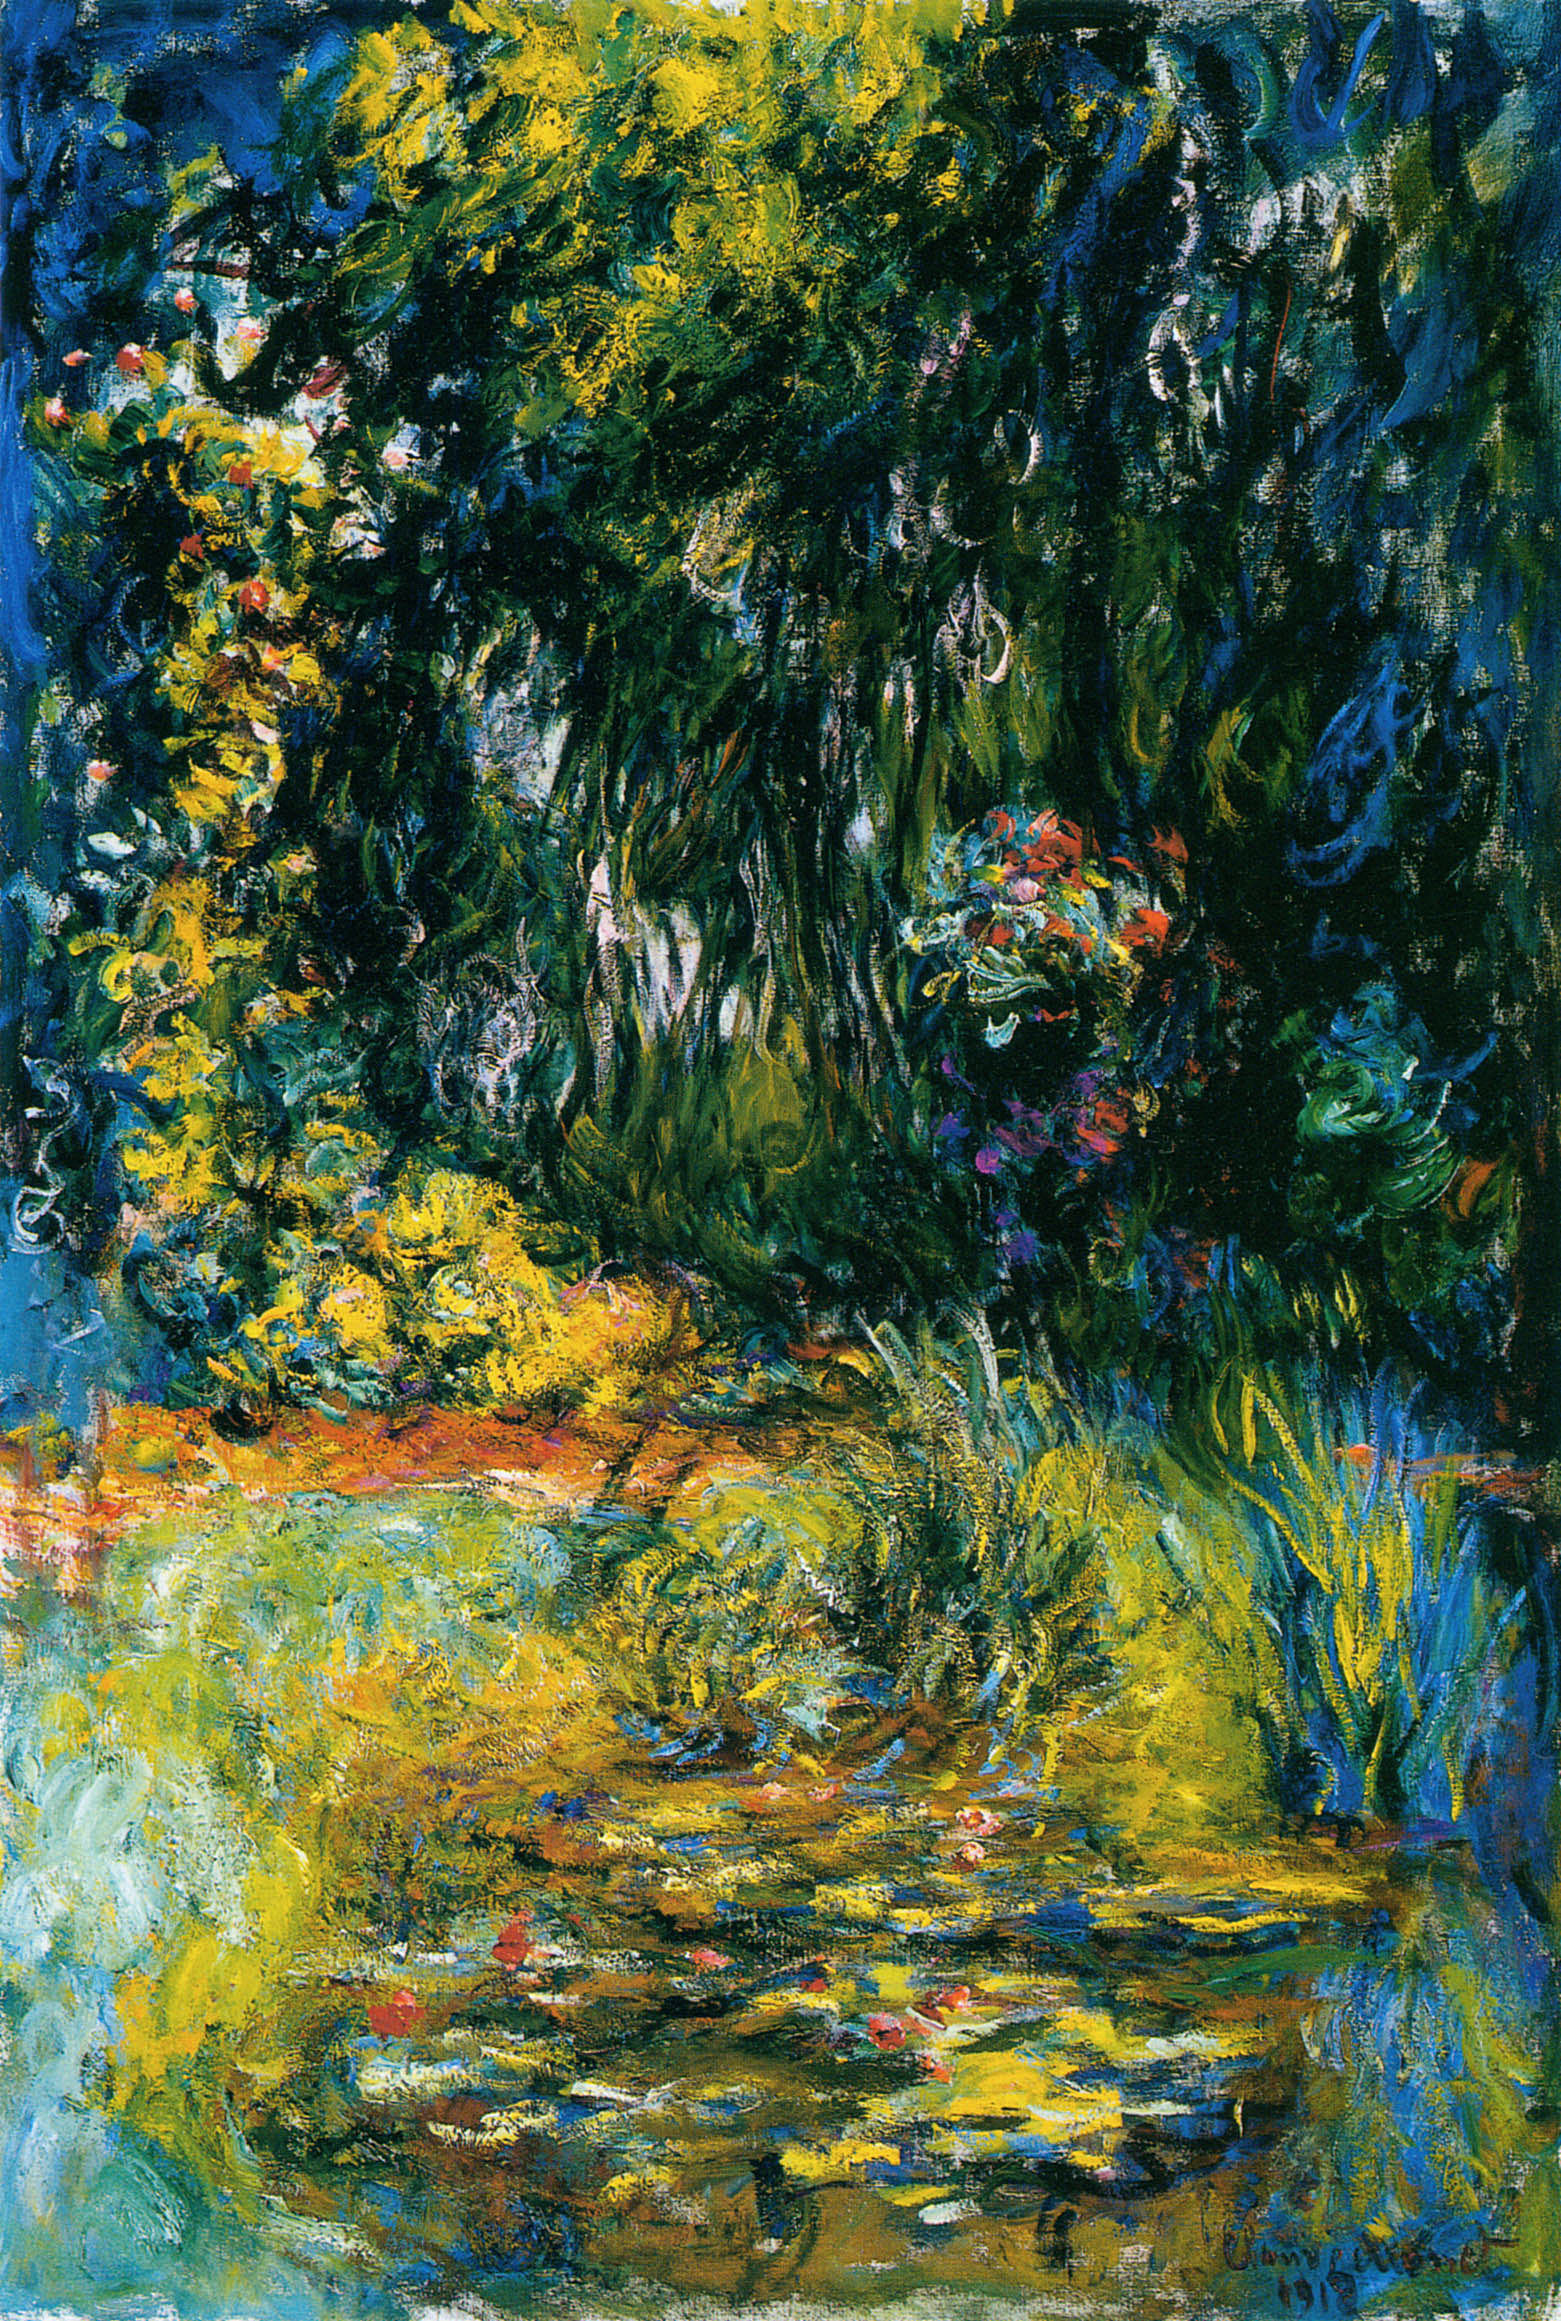 Water Lily Pond, 1918 - Claude Monet - WikiArt.org